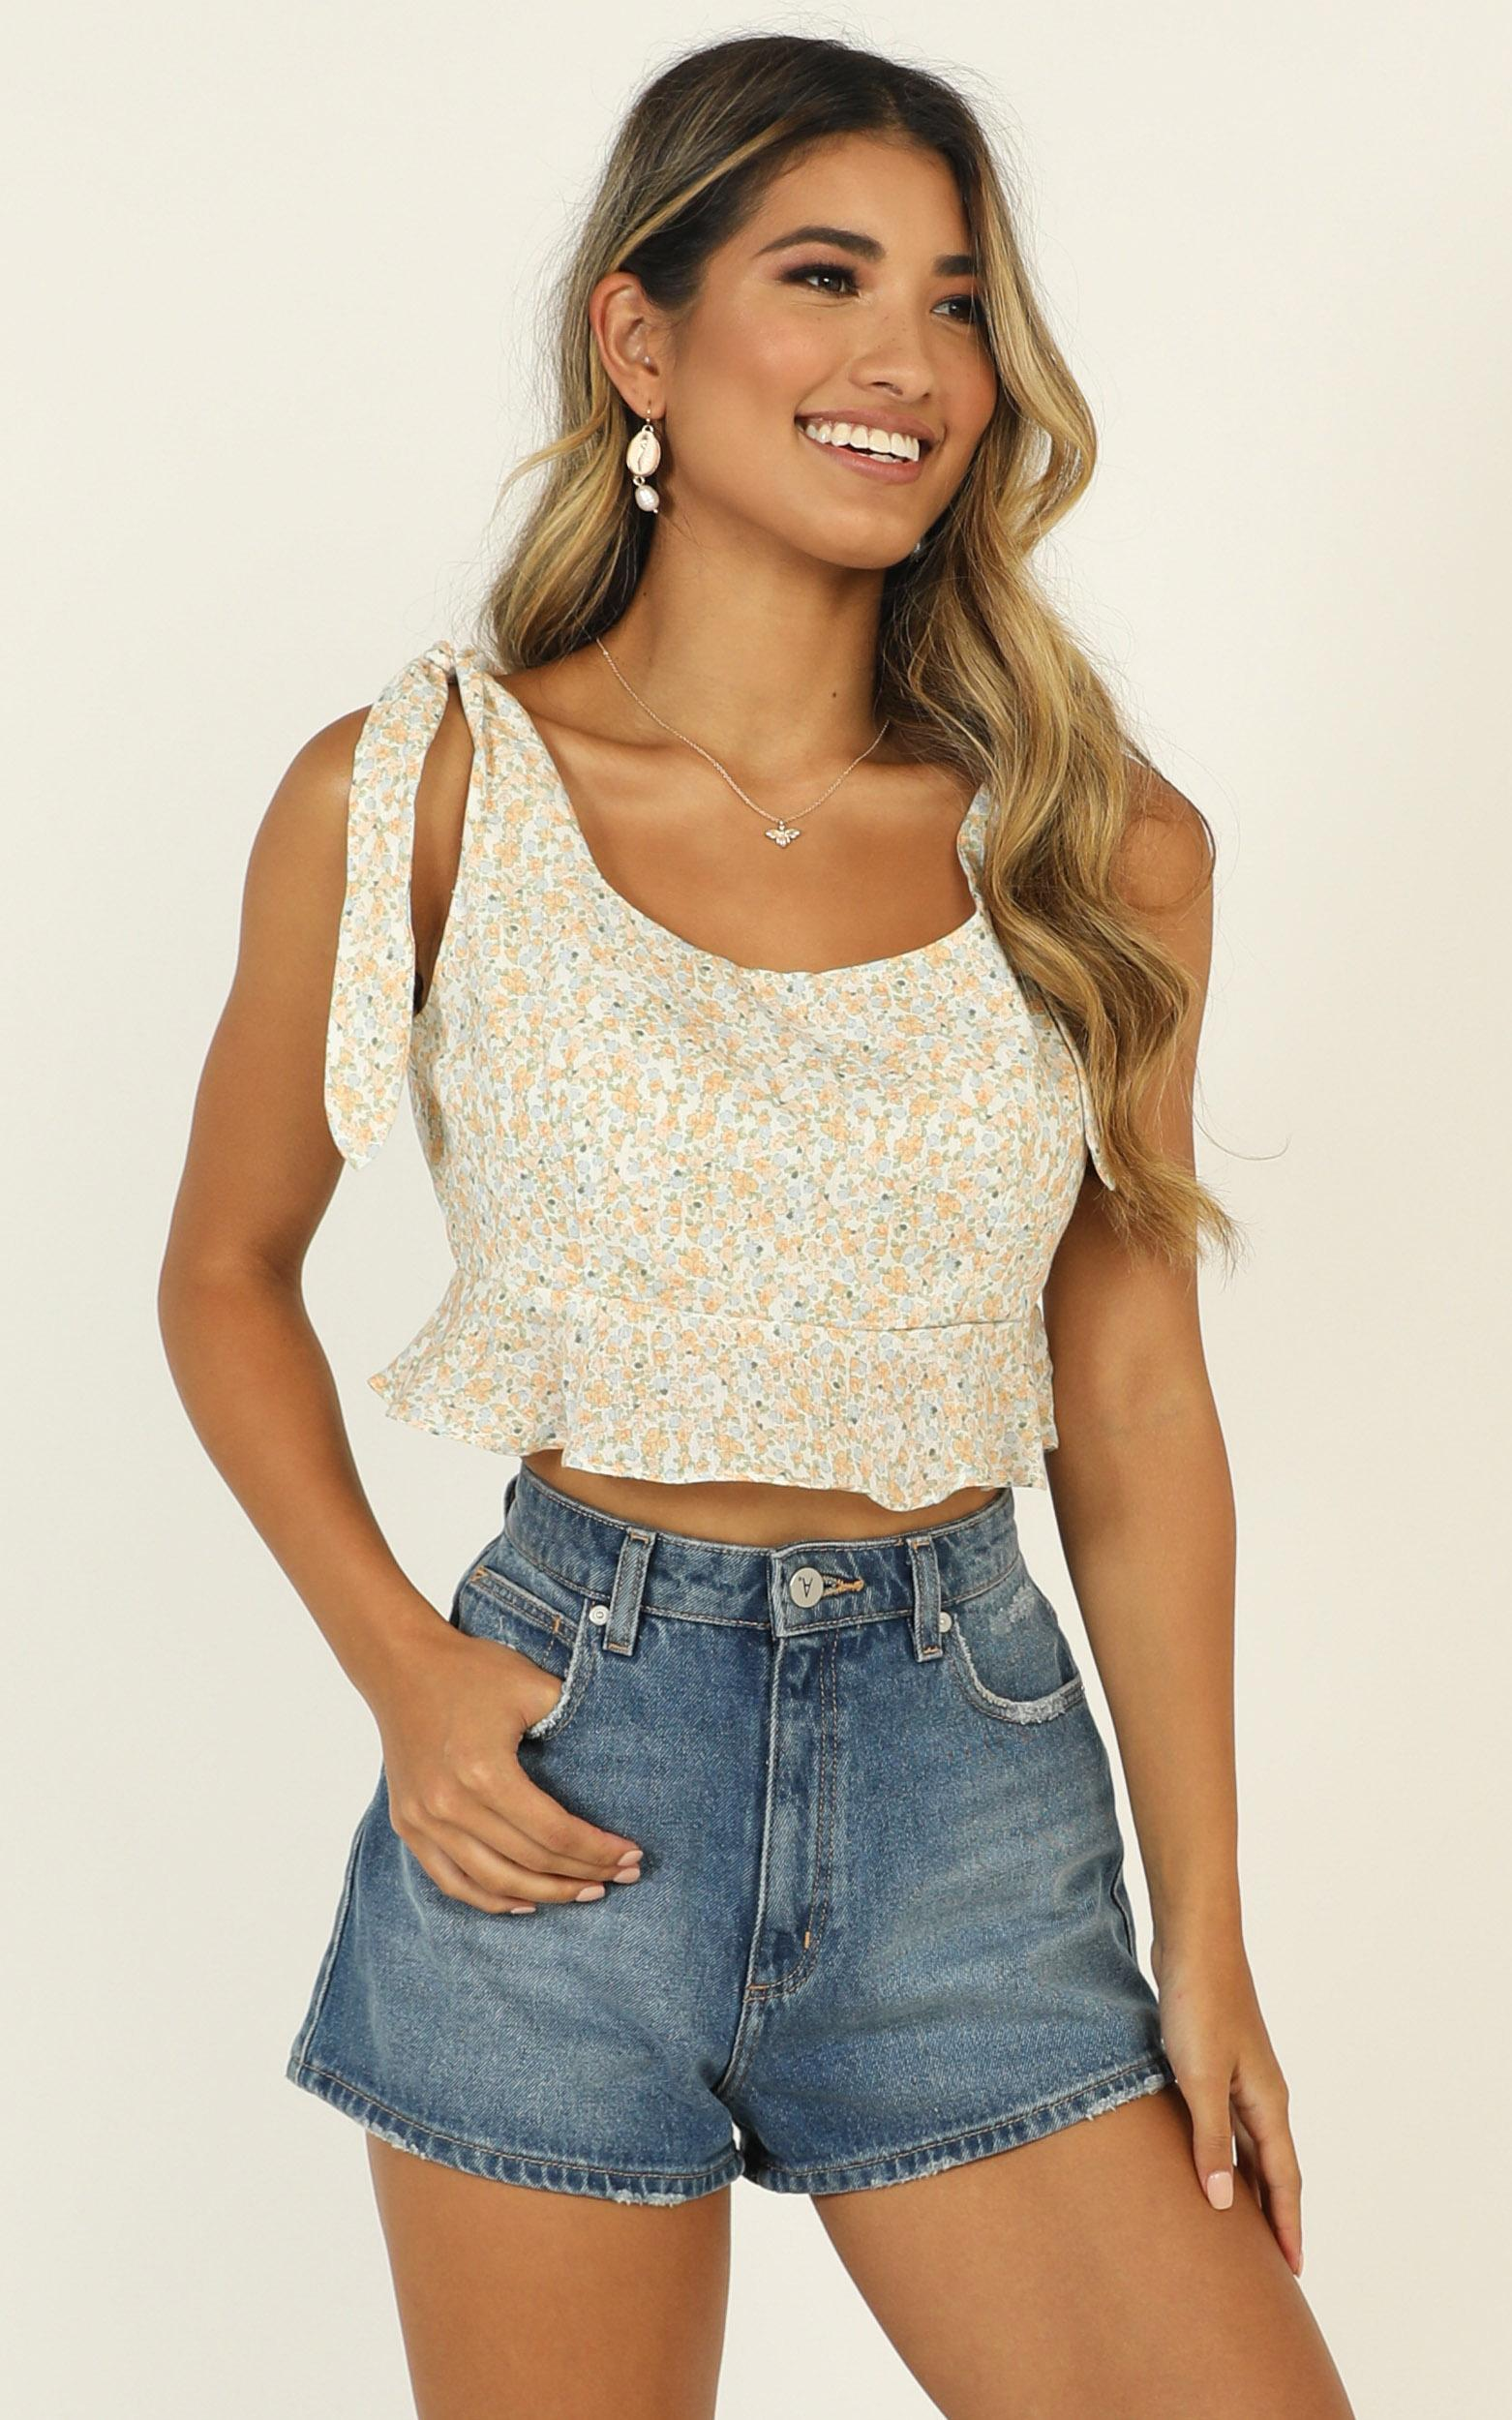 Arabella Ruffle Top in yellow floral - 12 (L), Yellow, hi-res image number null